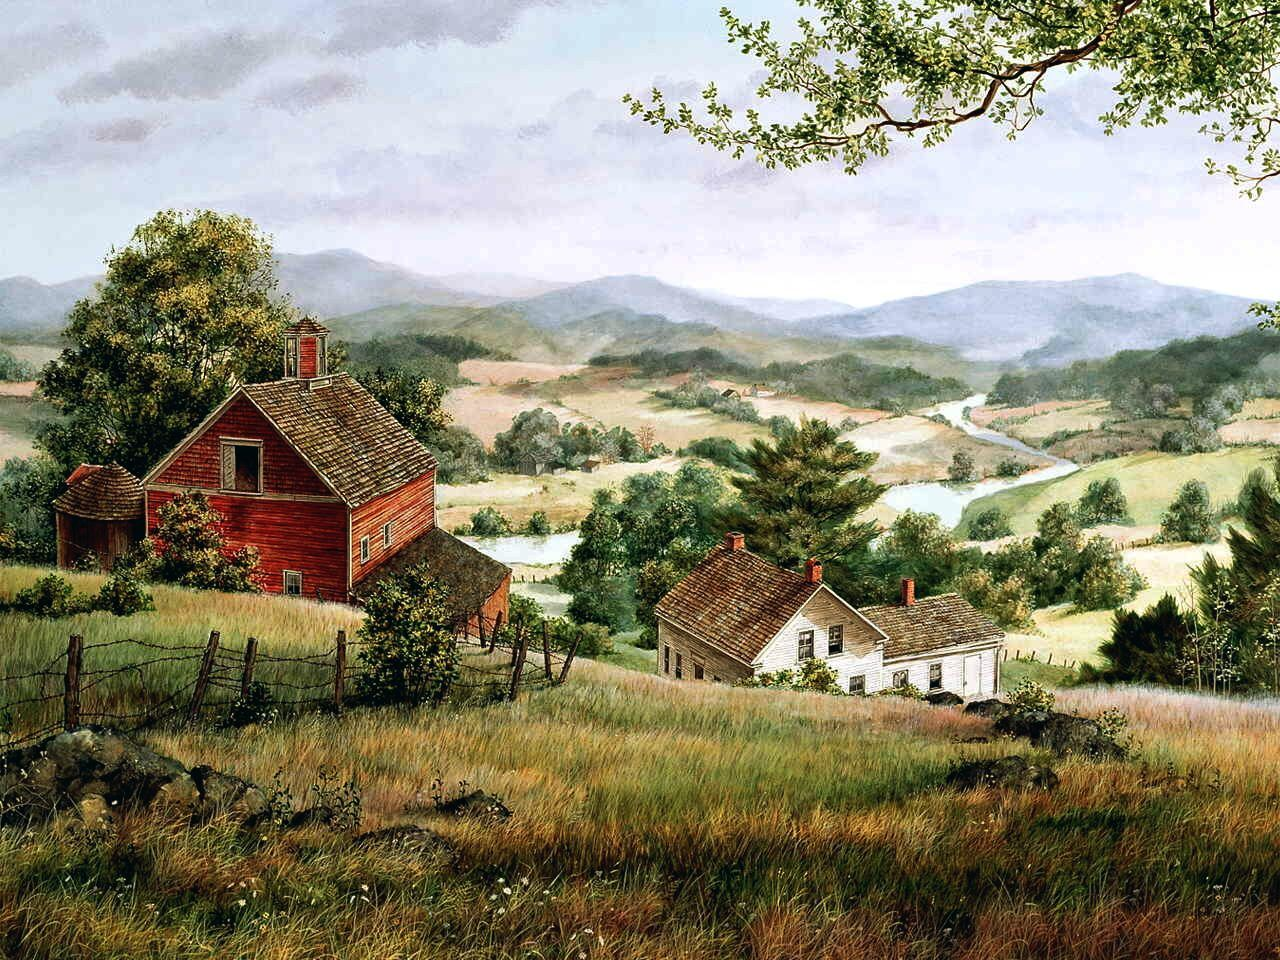 Art by Fred Swan (?) - Like his treatment of pastoral settings.